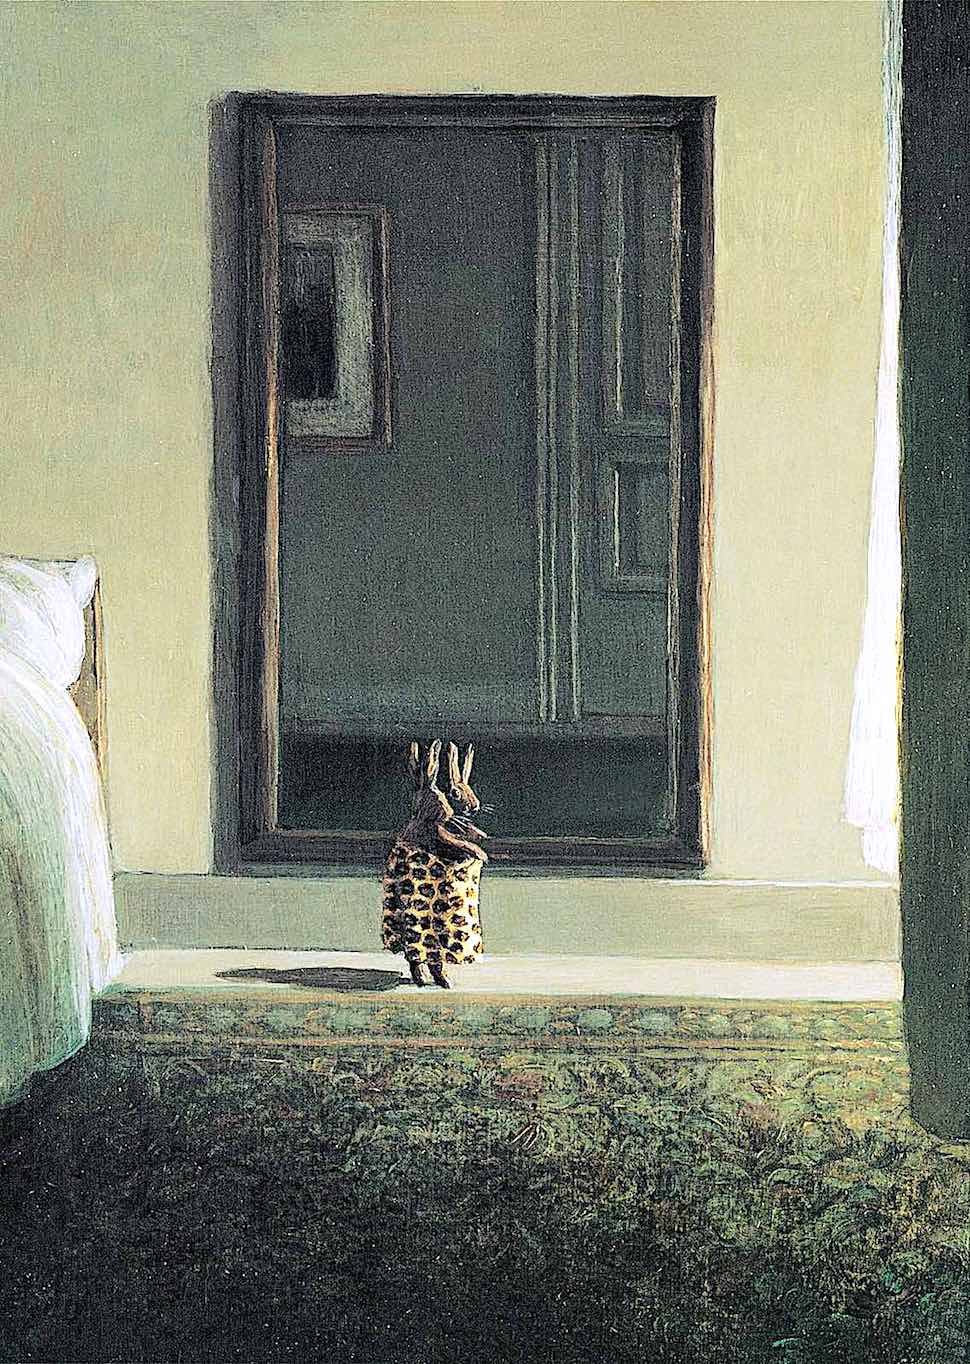 a Michael Sowa image of a small rabbit trying clothes in a bedroom mirror